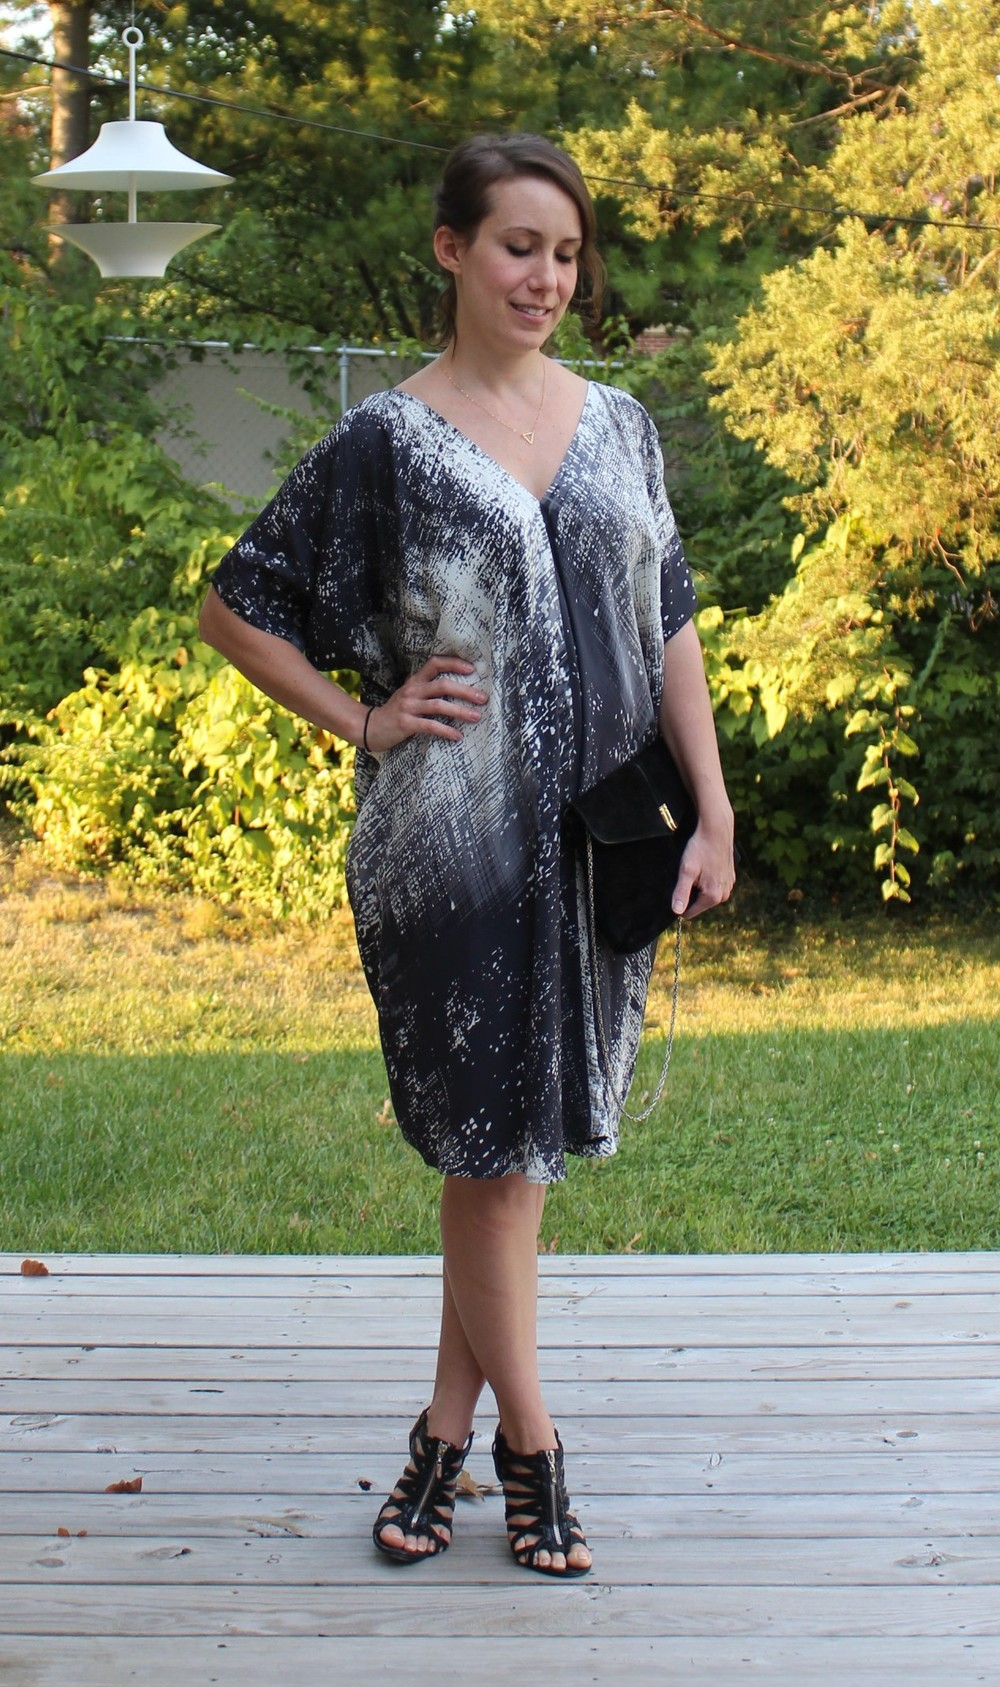 st. louis personal stylist - vince graffiti print dress